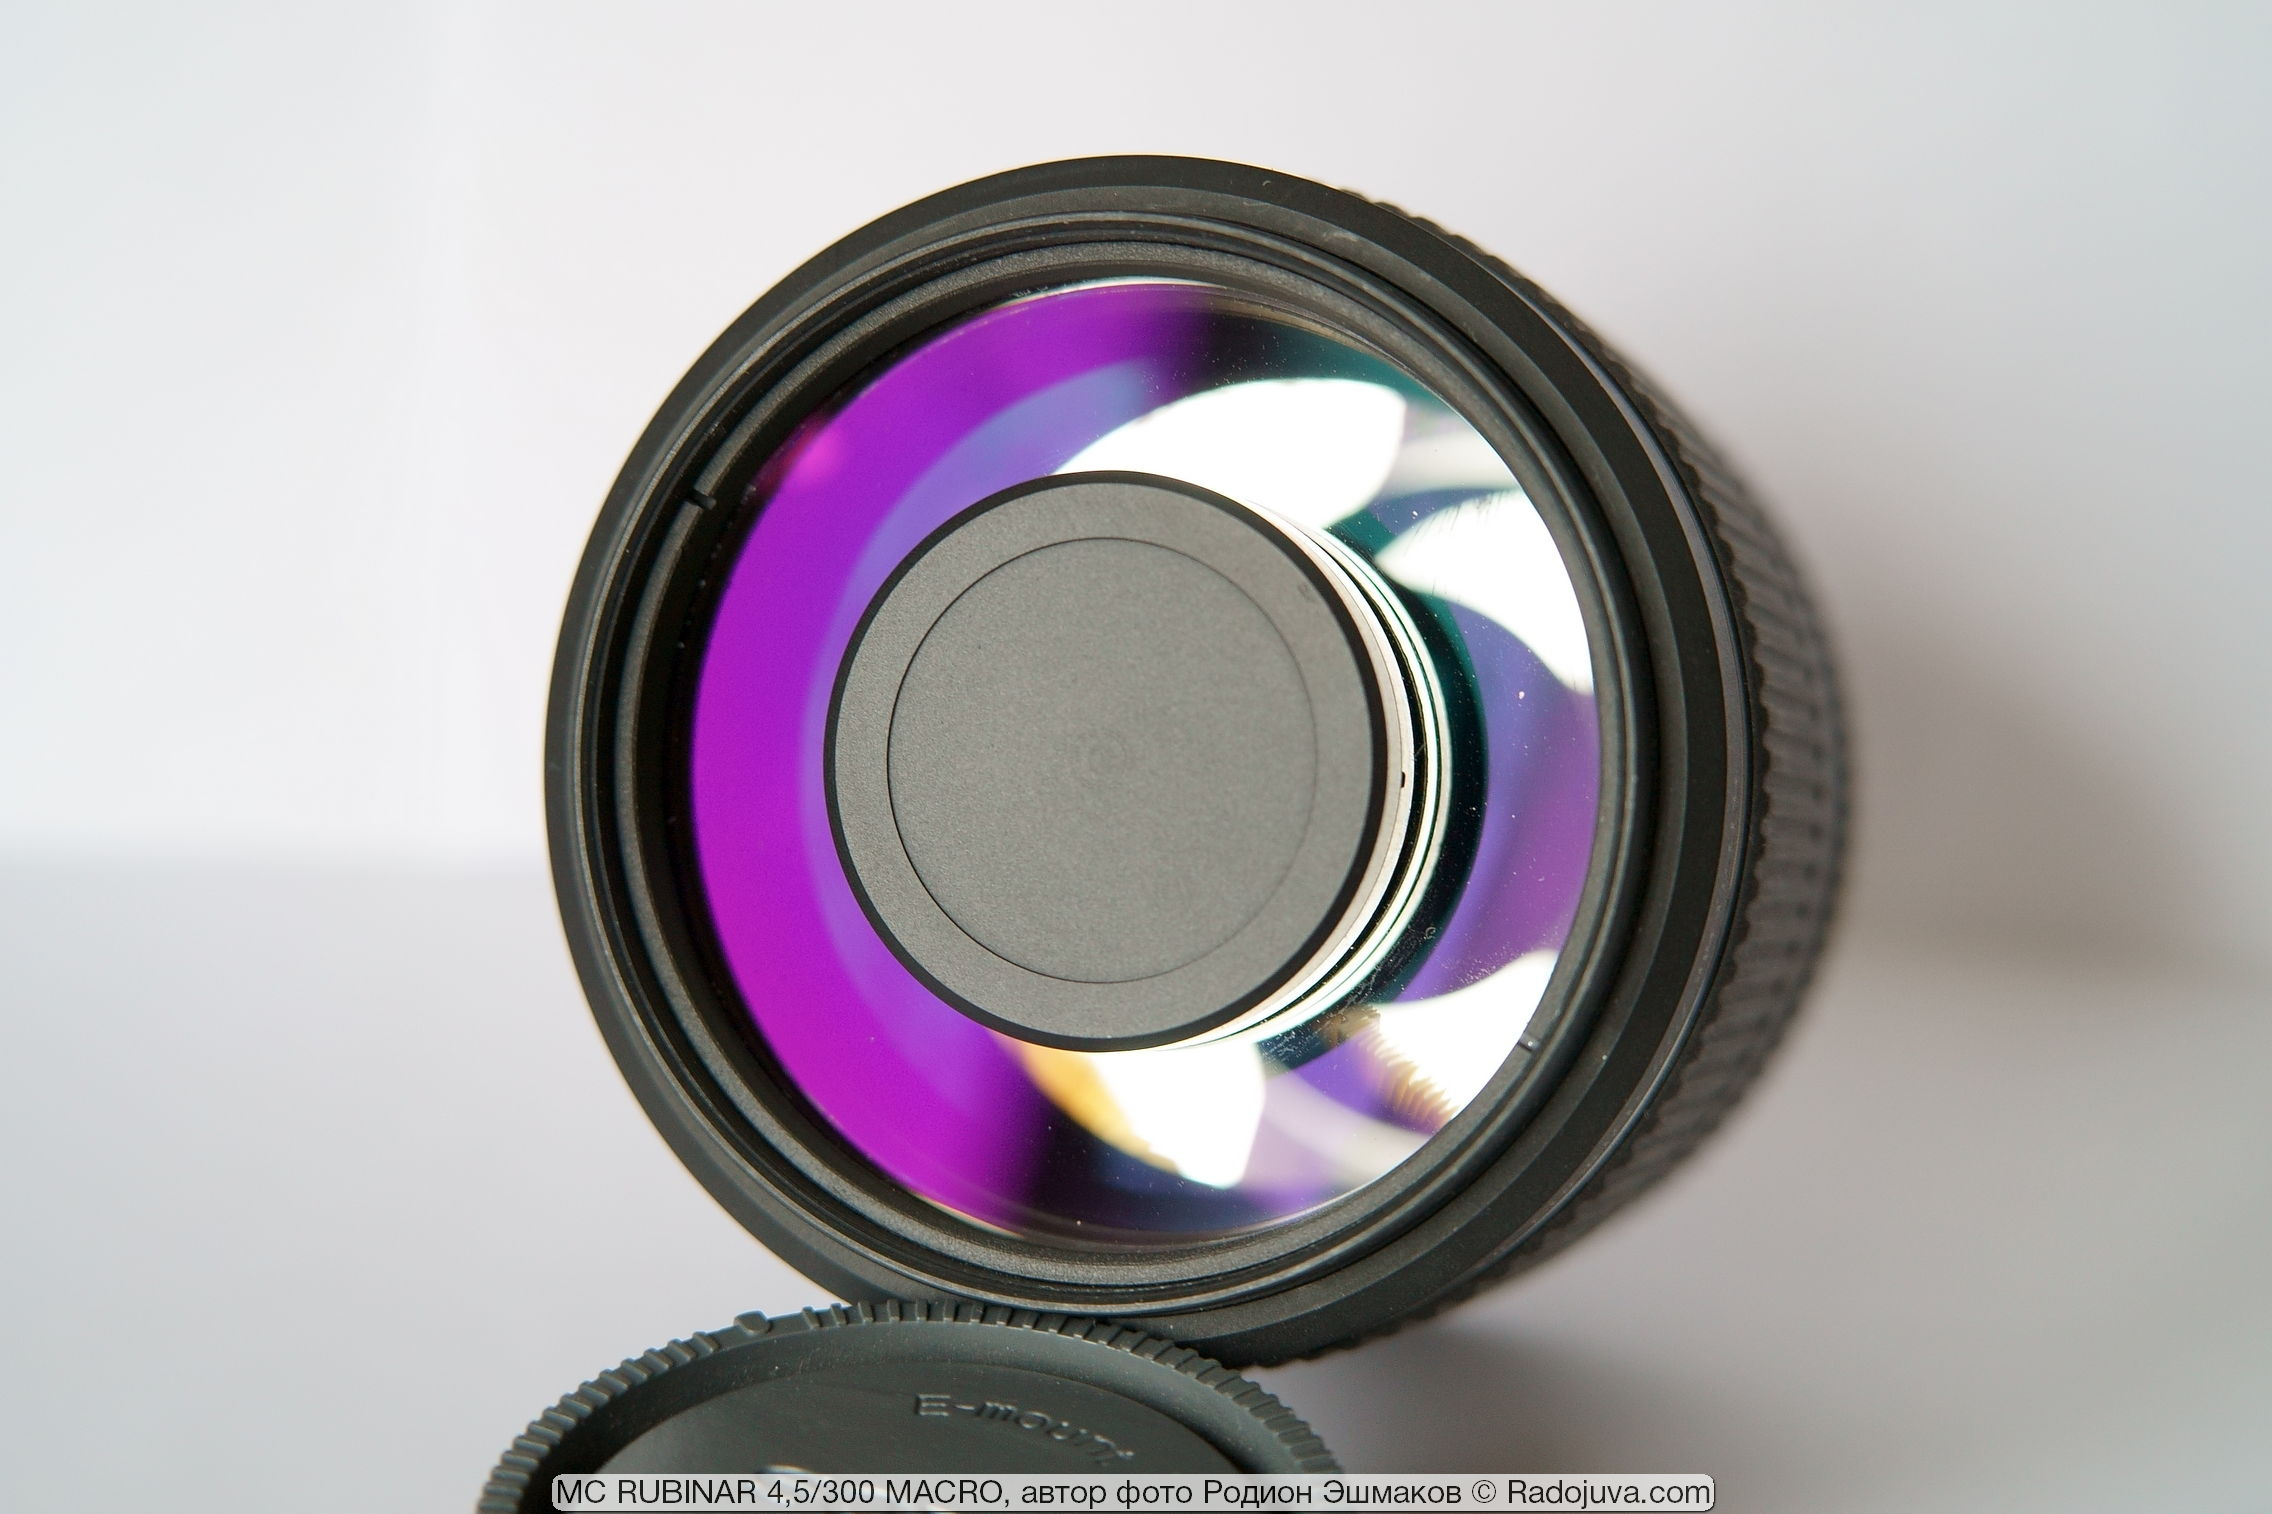 View of the Rubinar 300 / 4.5 lens from the front lens. A decorative black stopper conceals the secondary mirror mount.